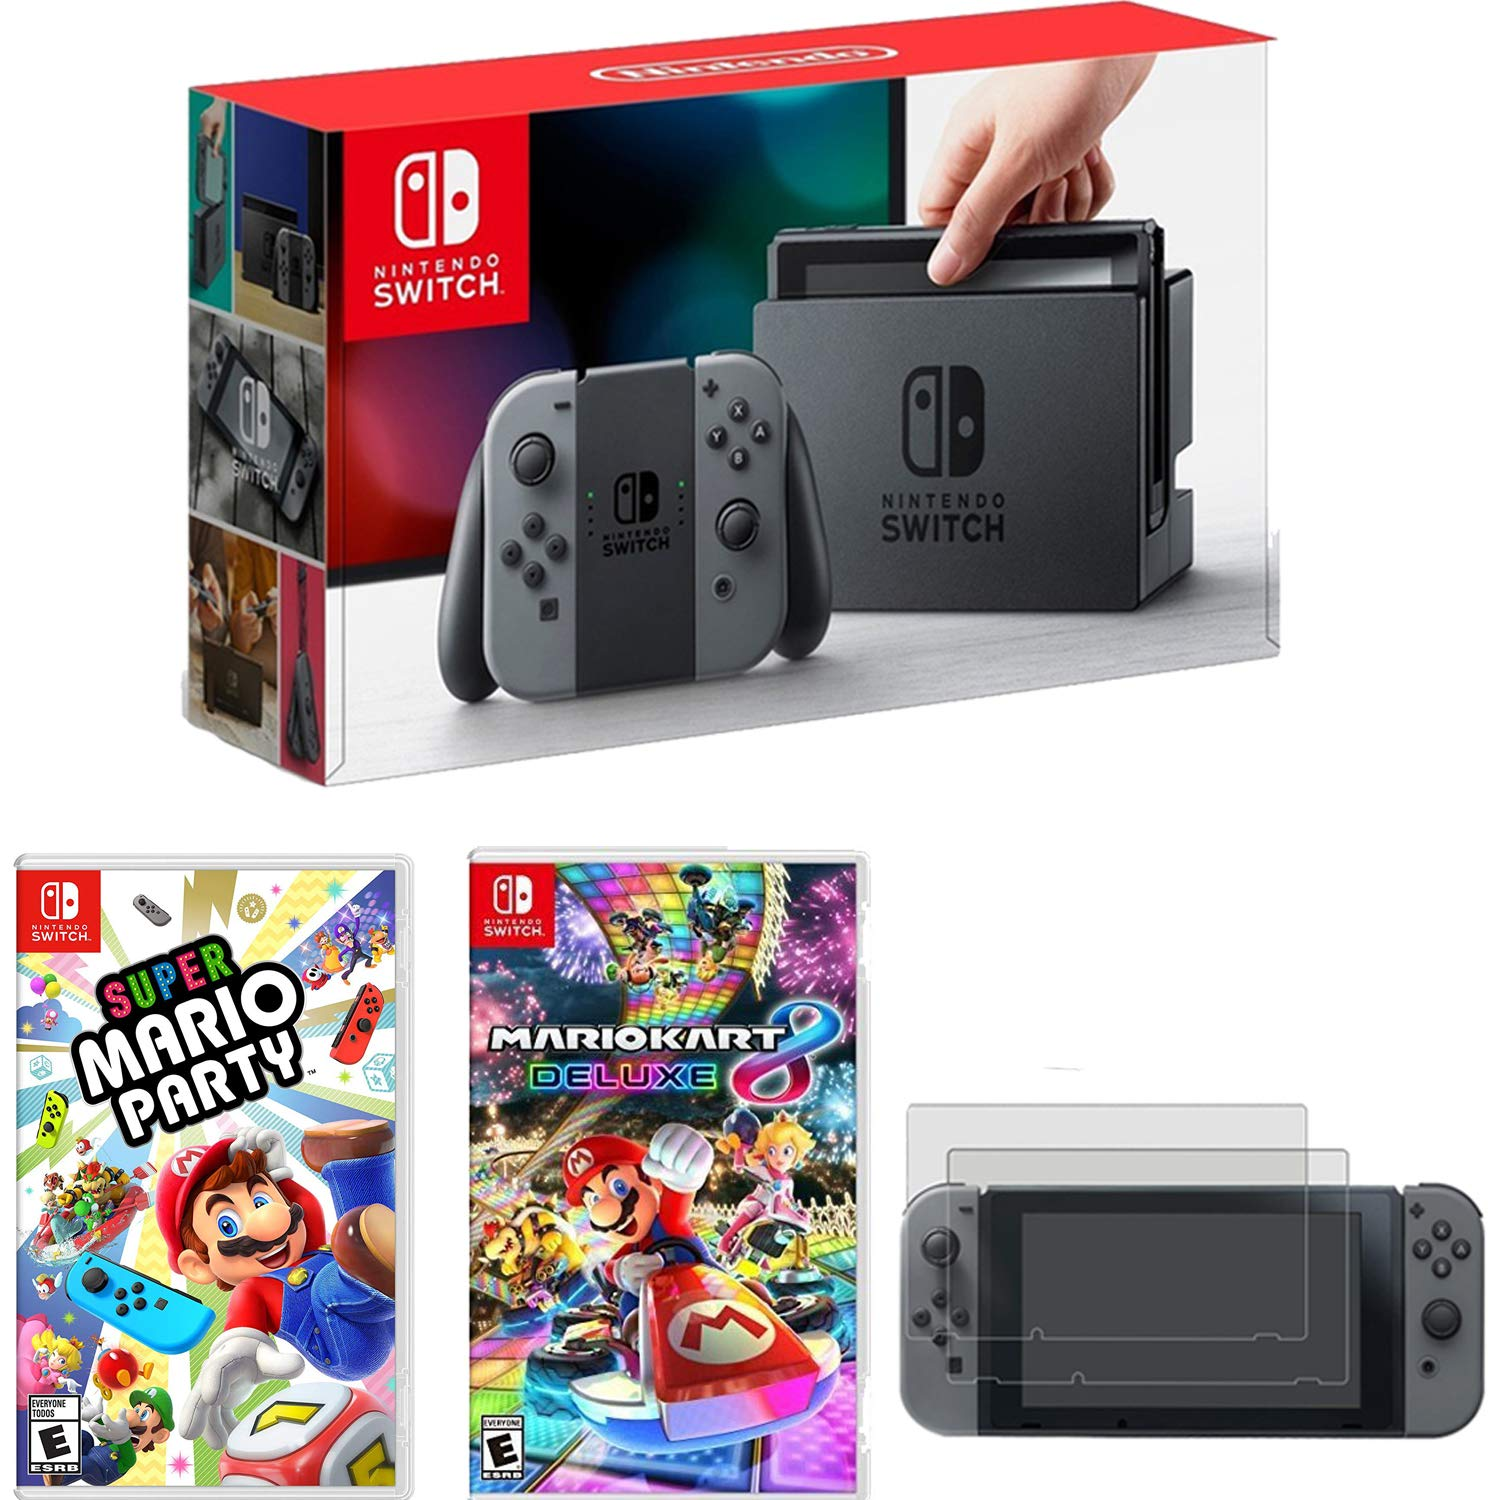 Nintendo Switch 32GB Console Gray JoyCon + Mario Kart 8 Deluxe+Super Mario Party Bundle